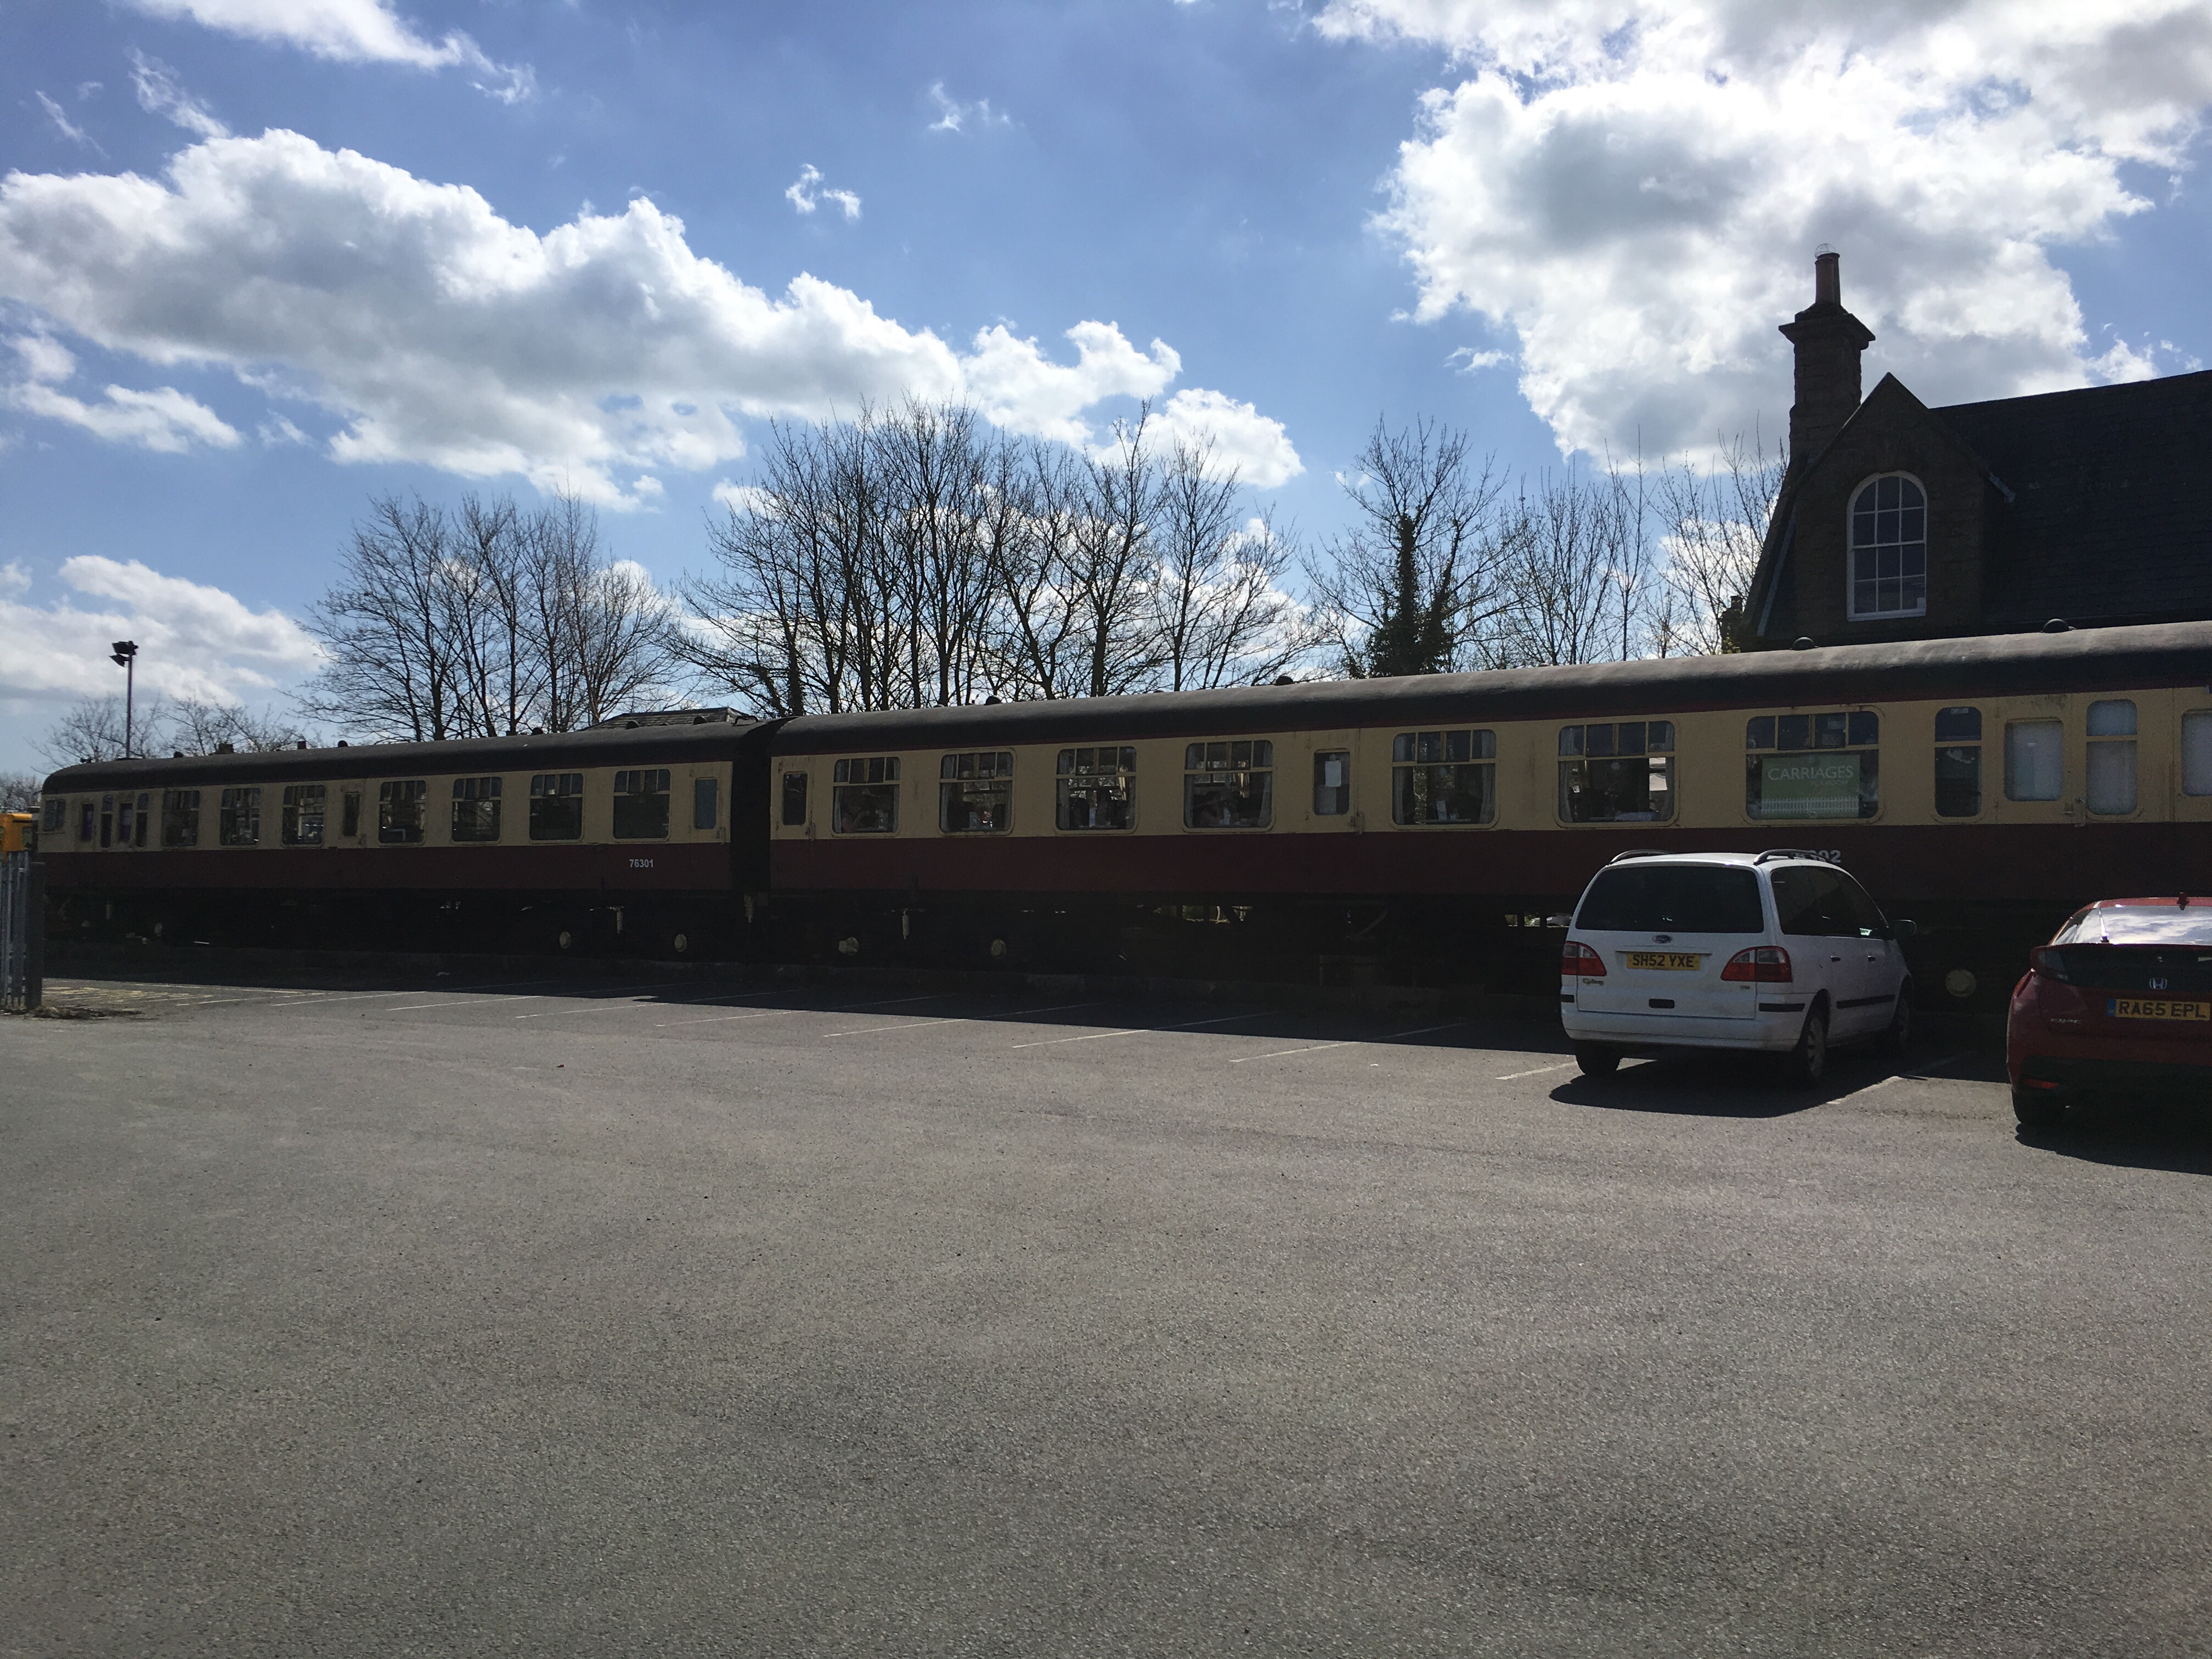 The Carriages Tea Room